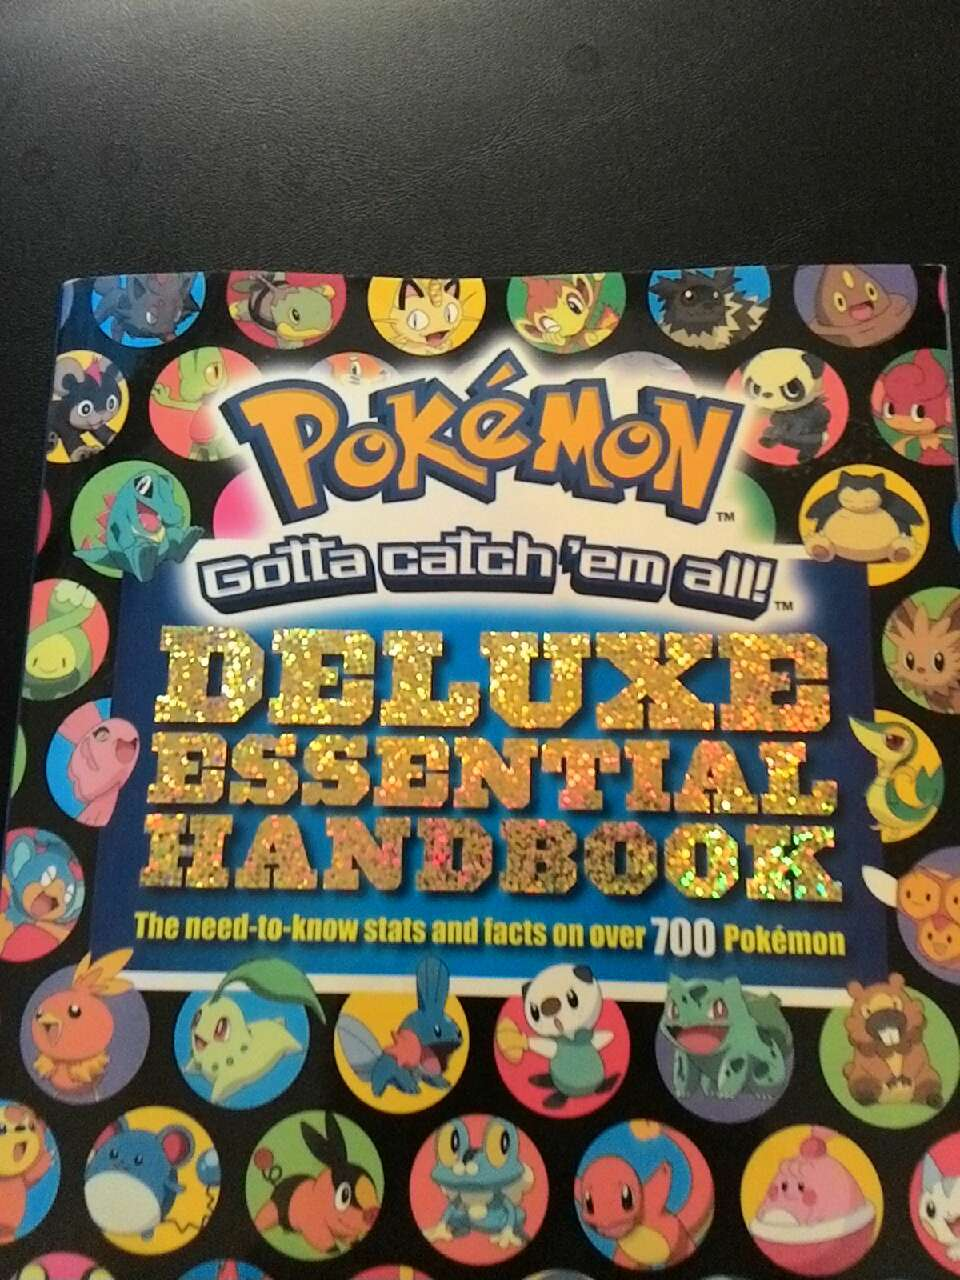 Pokemon Gotta Catch Em All Deluxe Essentials Handbook E2206c3c 53a9 40